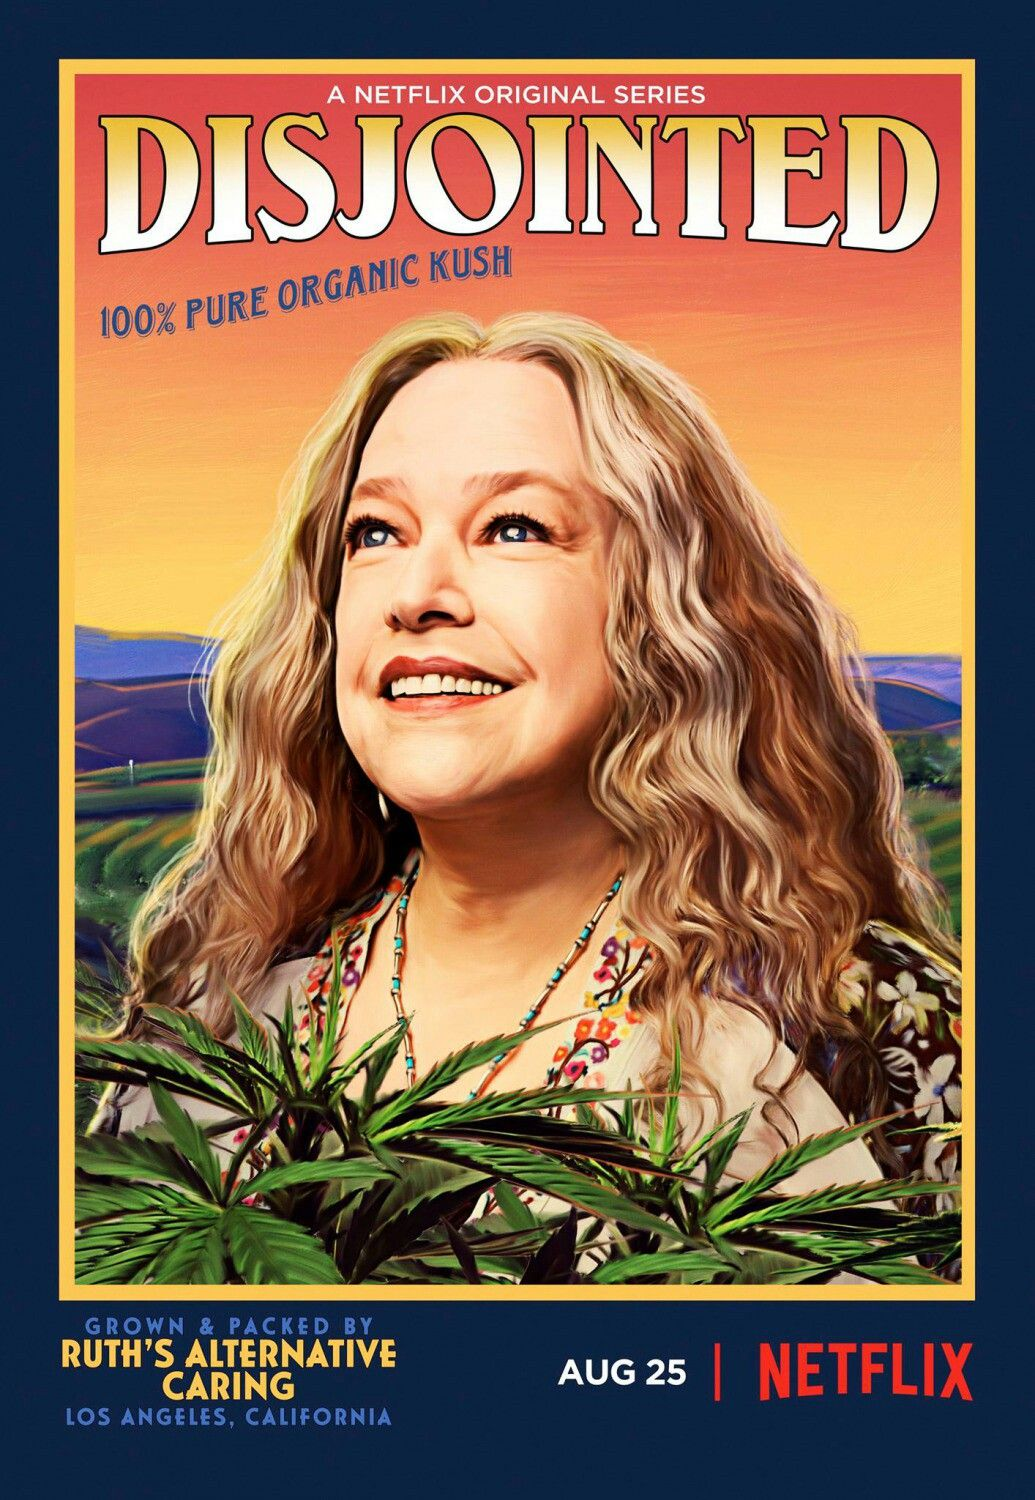 7 Disjointed Ideas Netflix Chuck Lorre Comedy Tv Series